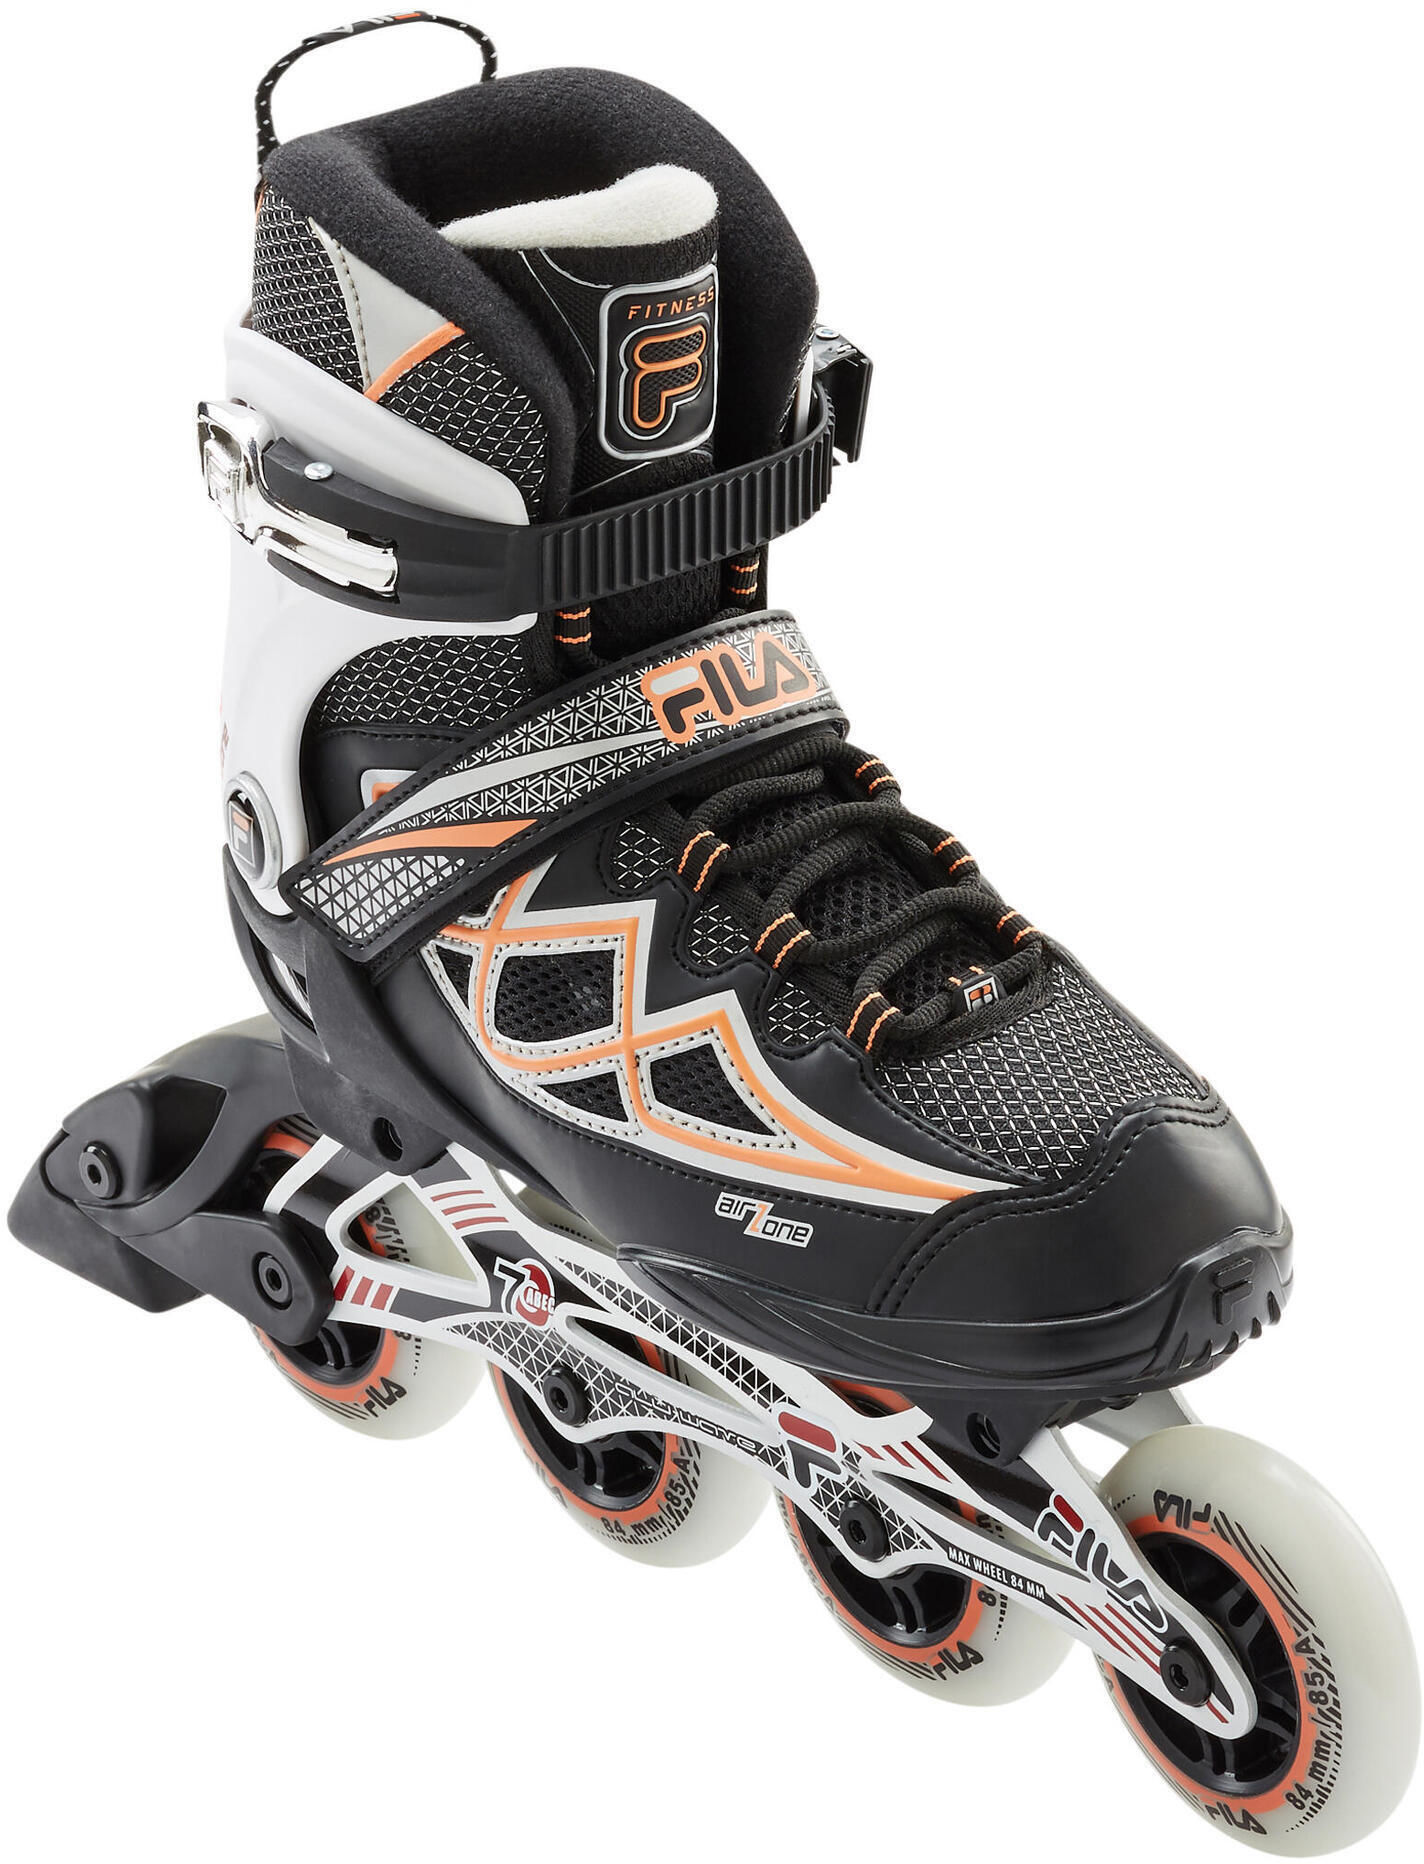 Rolki fitness PRIMO AIR ZONE 84 mm